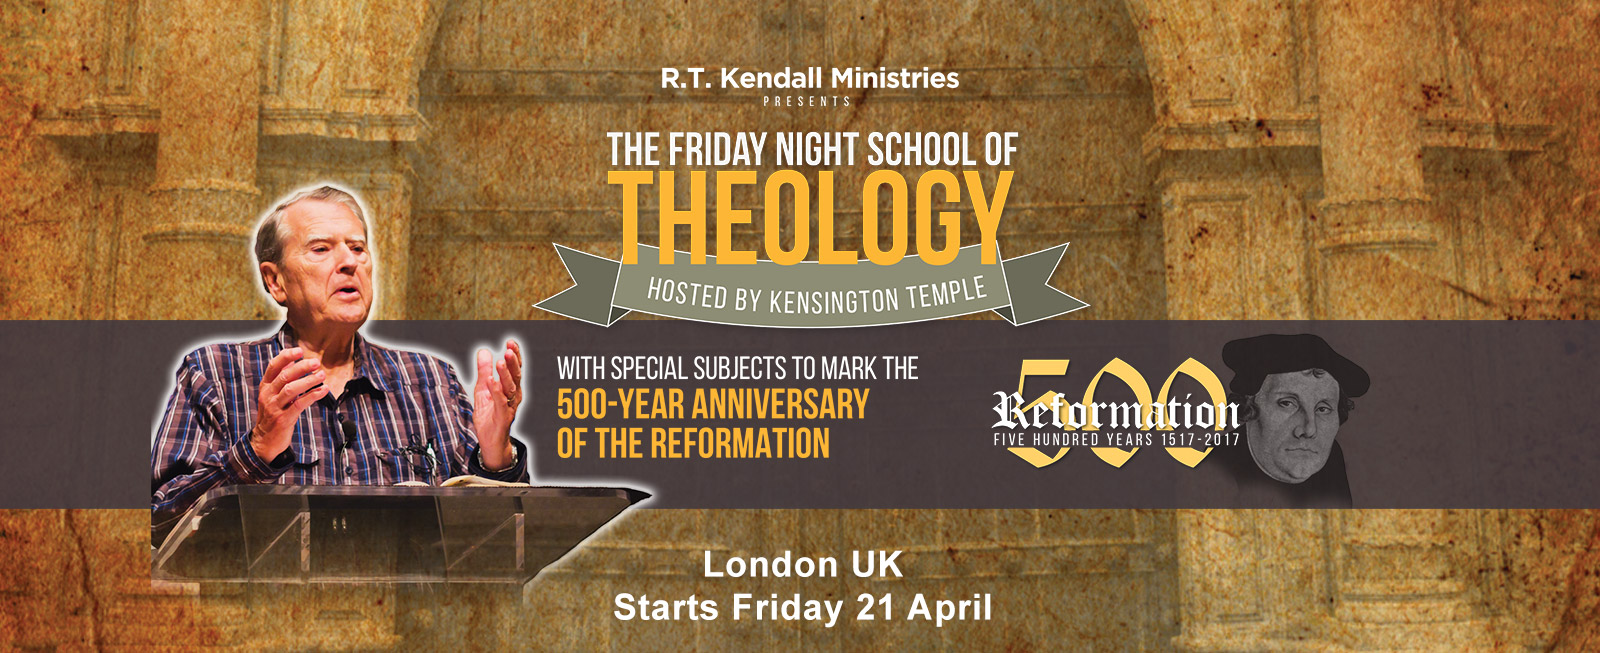 rtkendallministries-friday-night-school-of-theology1600x653